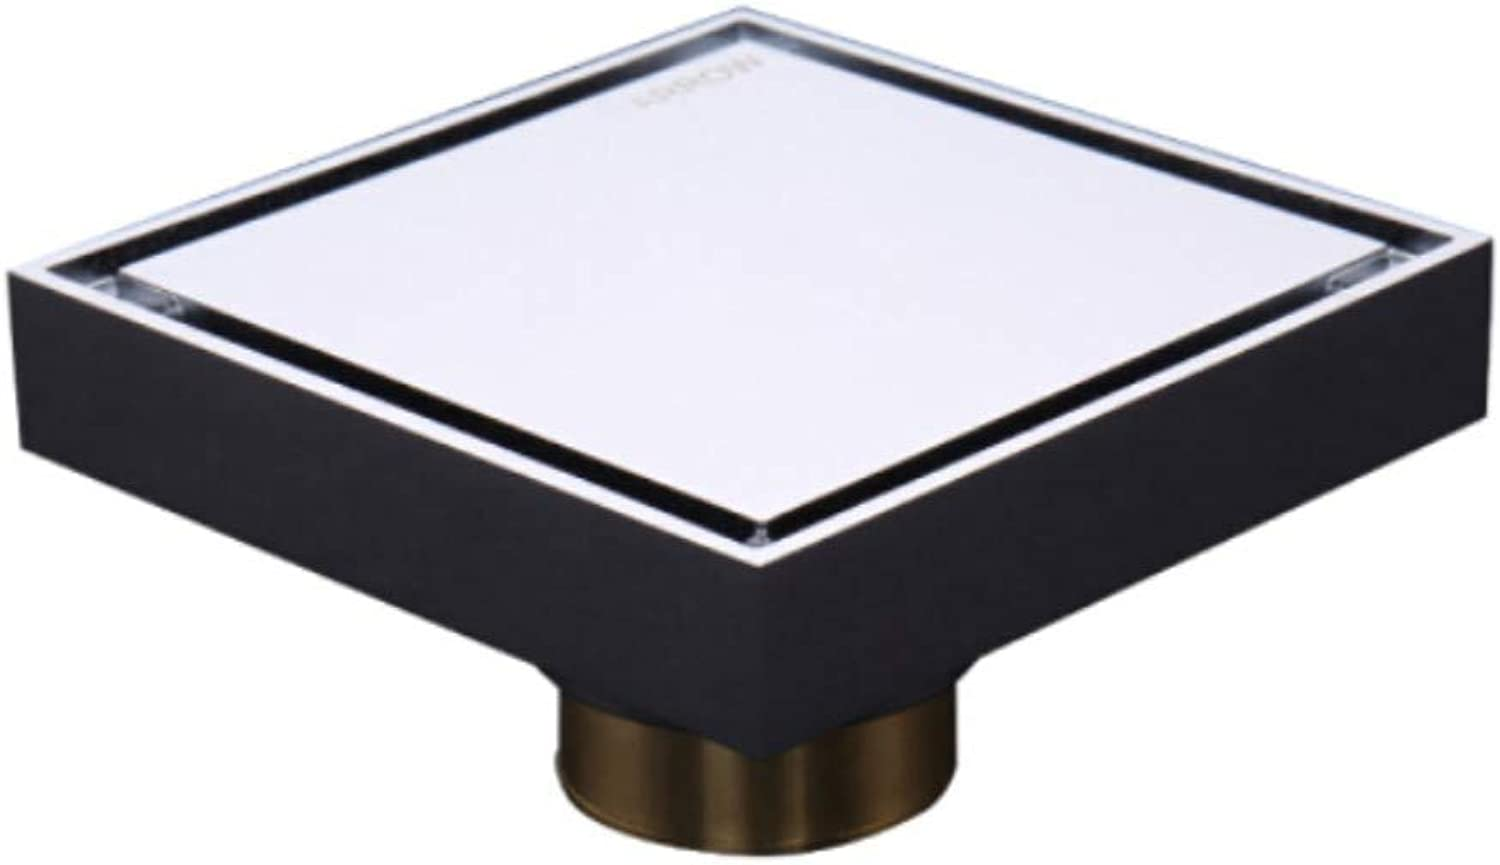 Floor Draincopper Bathroom Sewer Dry and Wet Universal Large Displacement Anti-Water Invisible Floor Drain